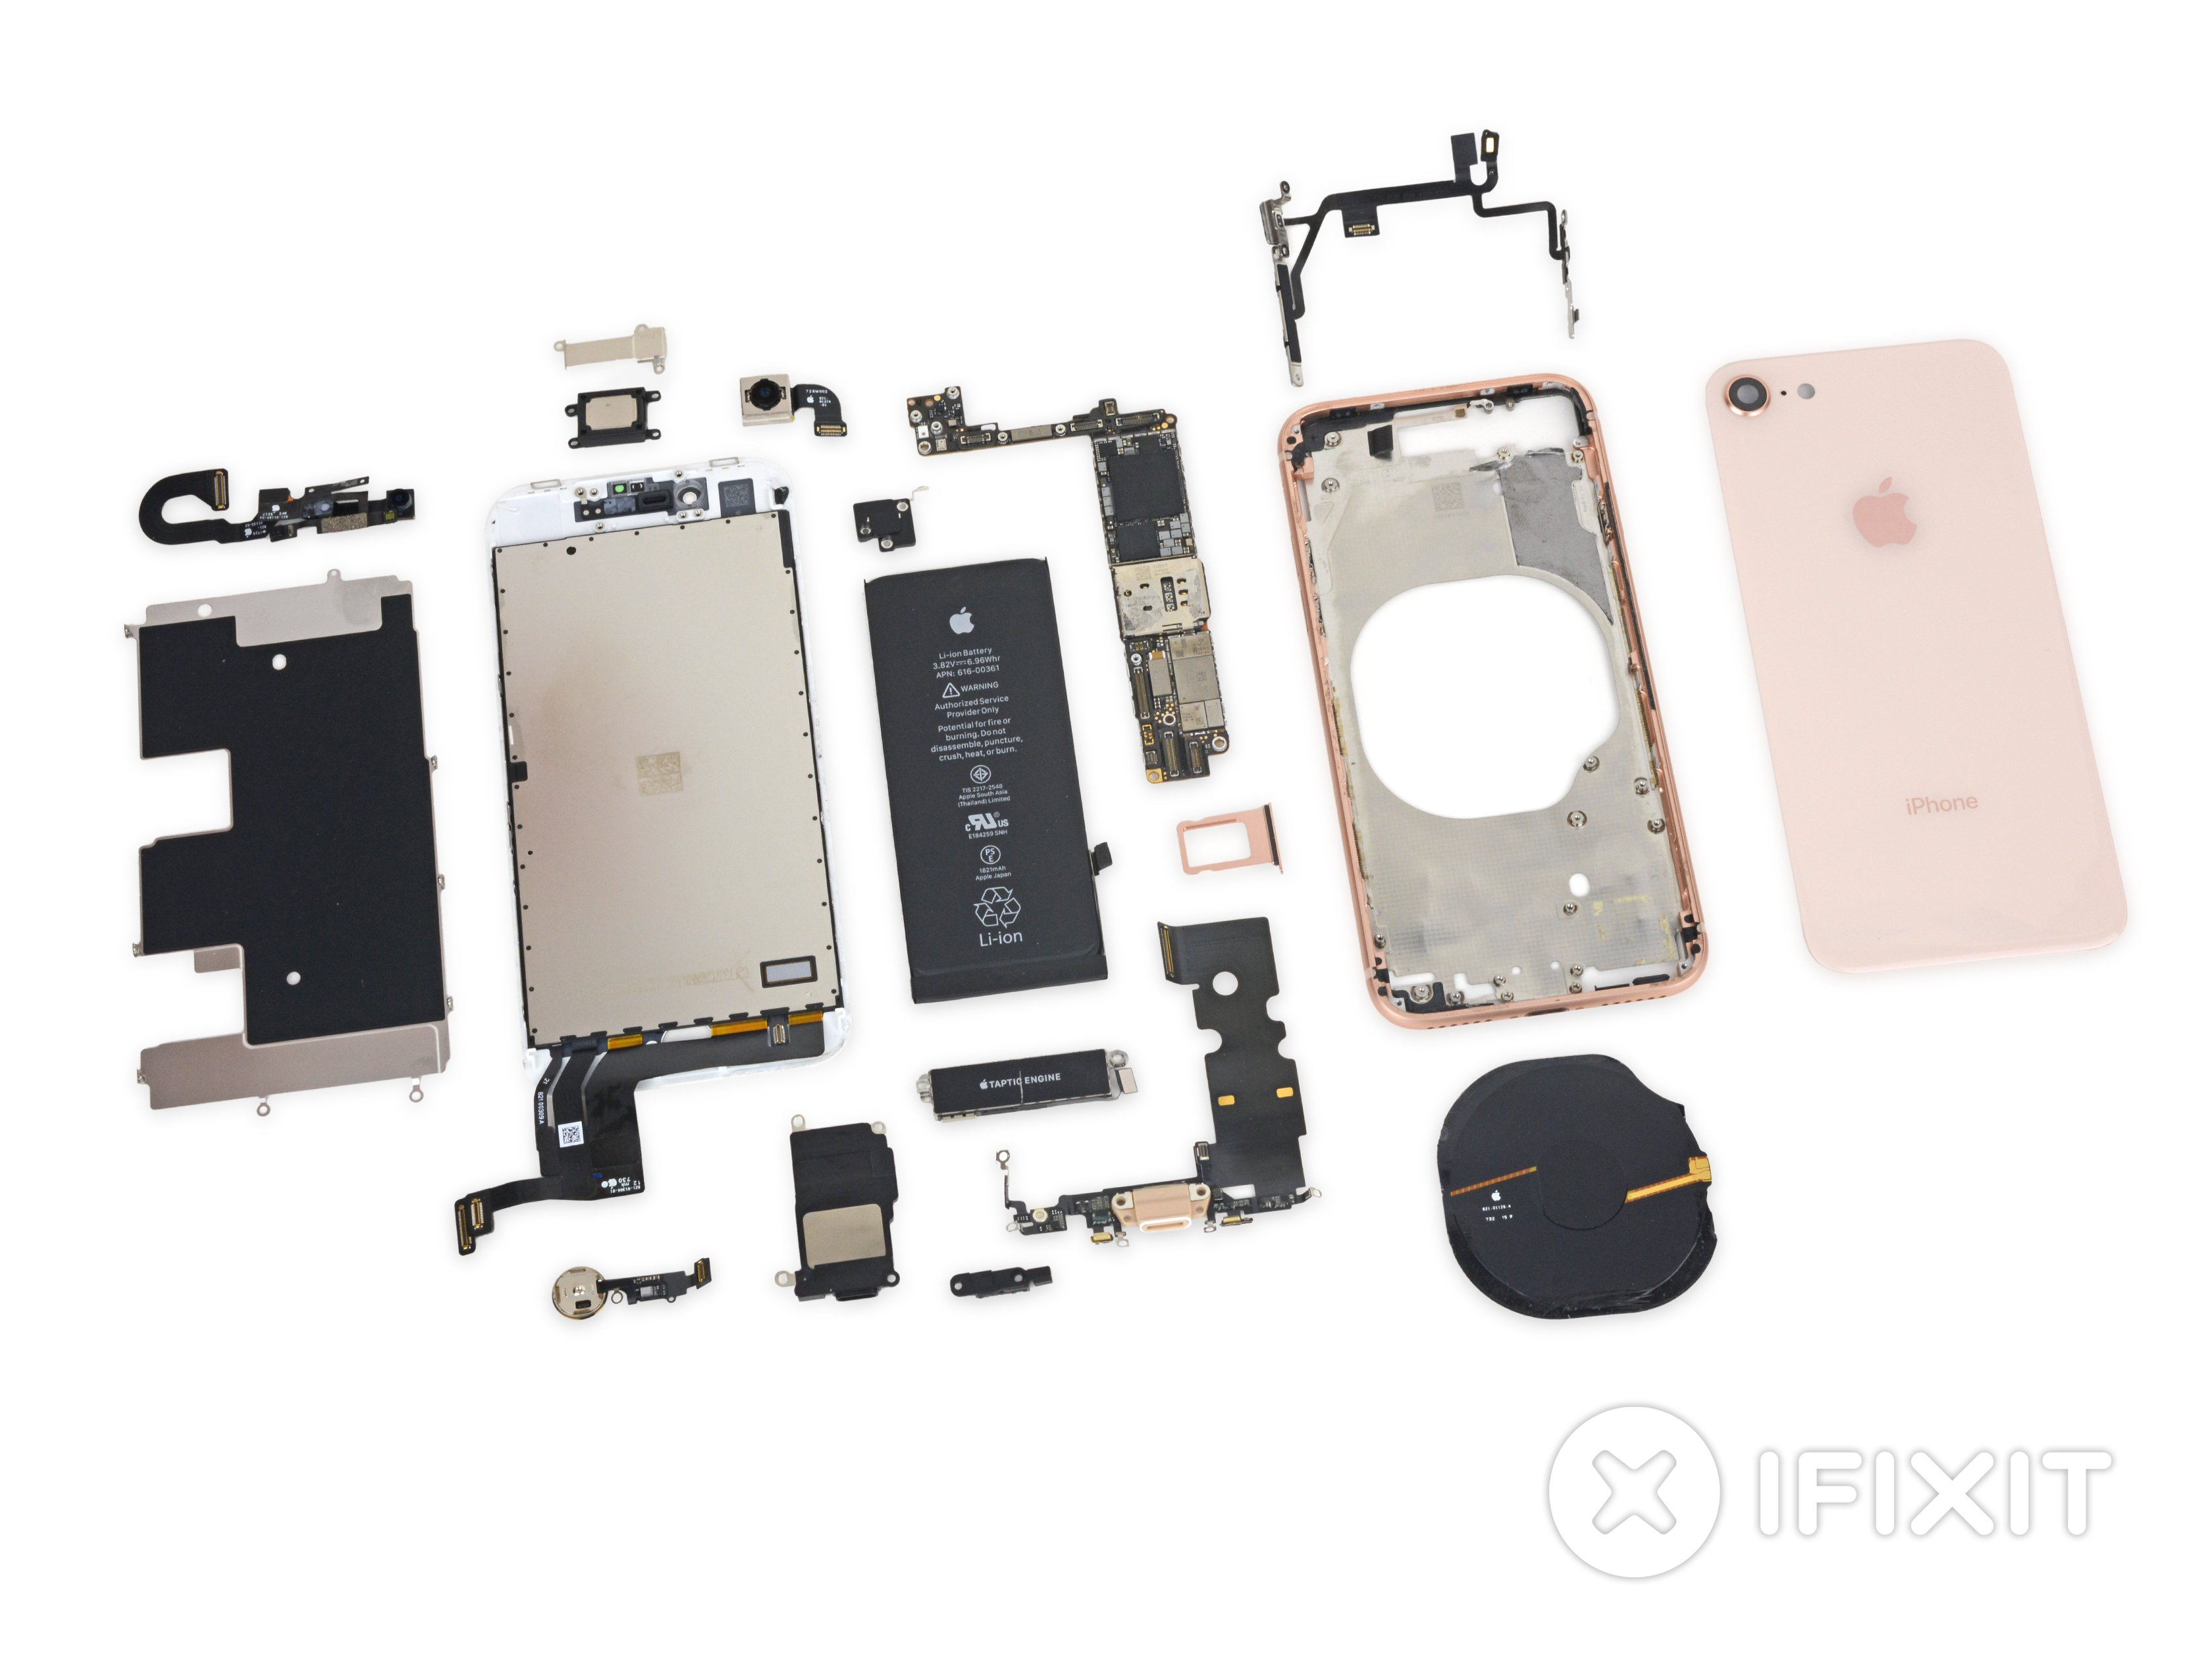 iPhone 8 Teardown - iFixit